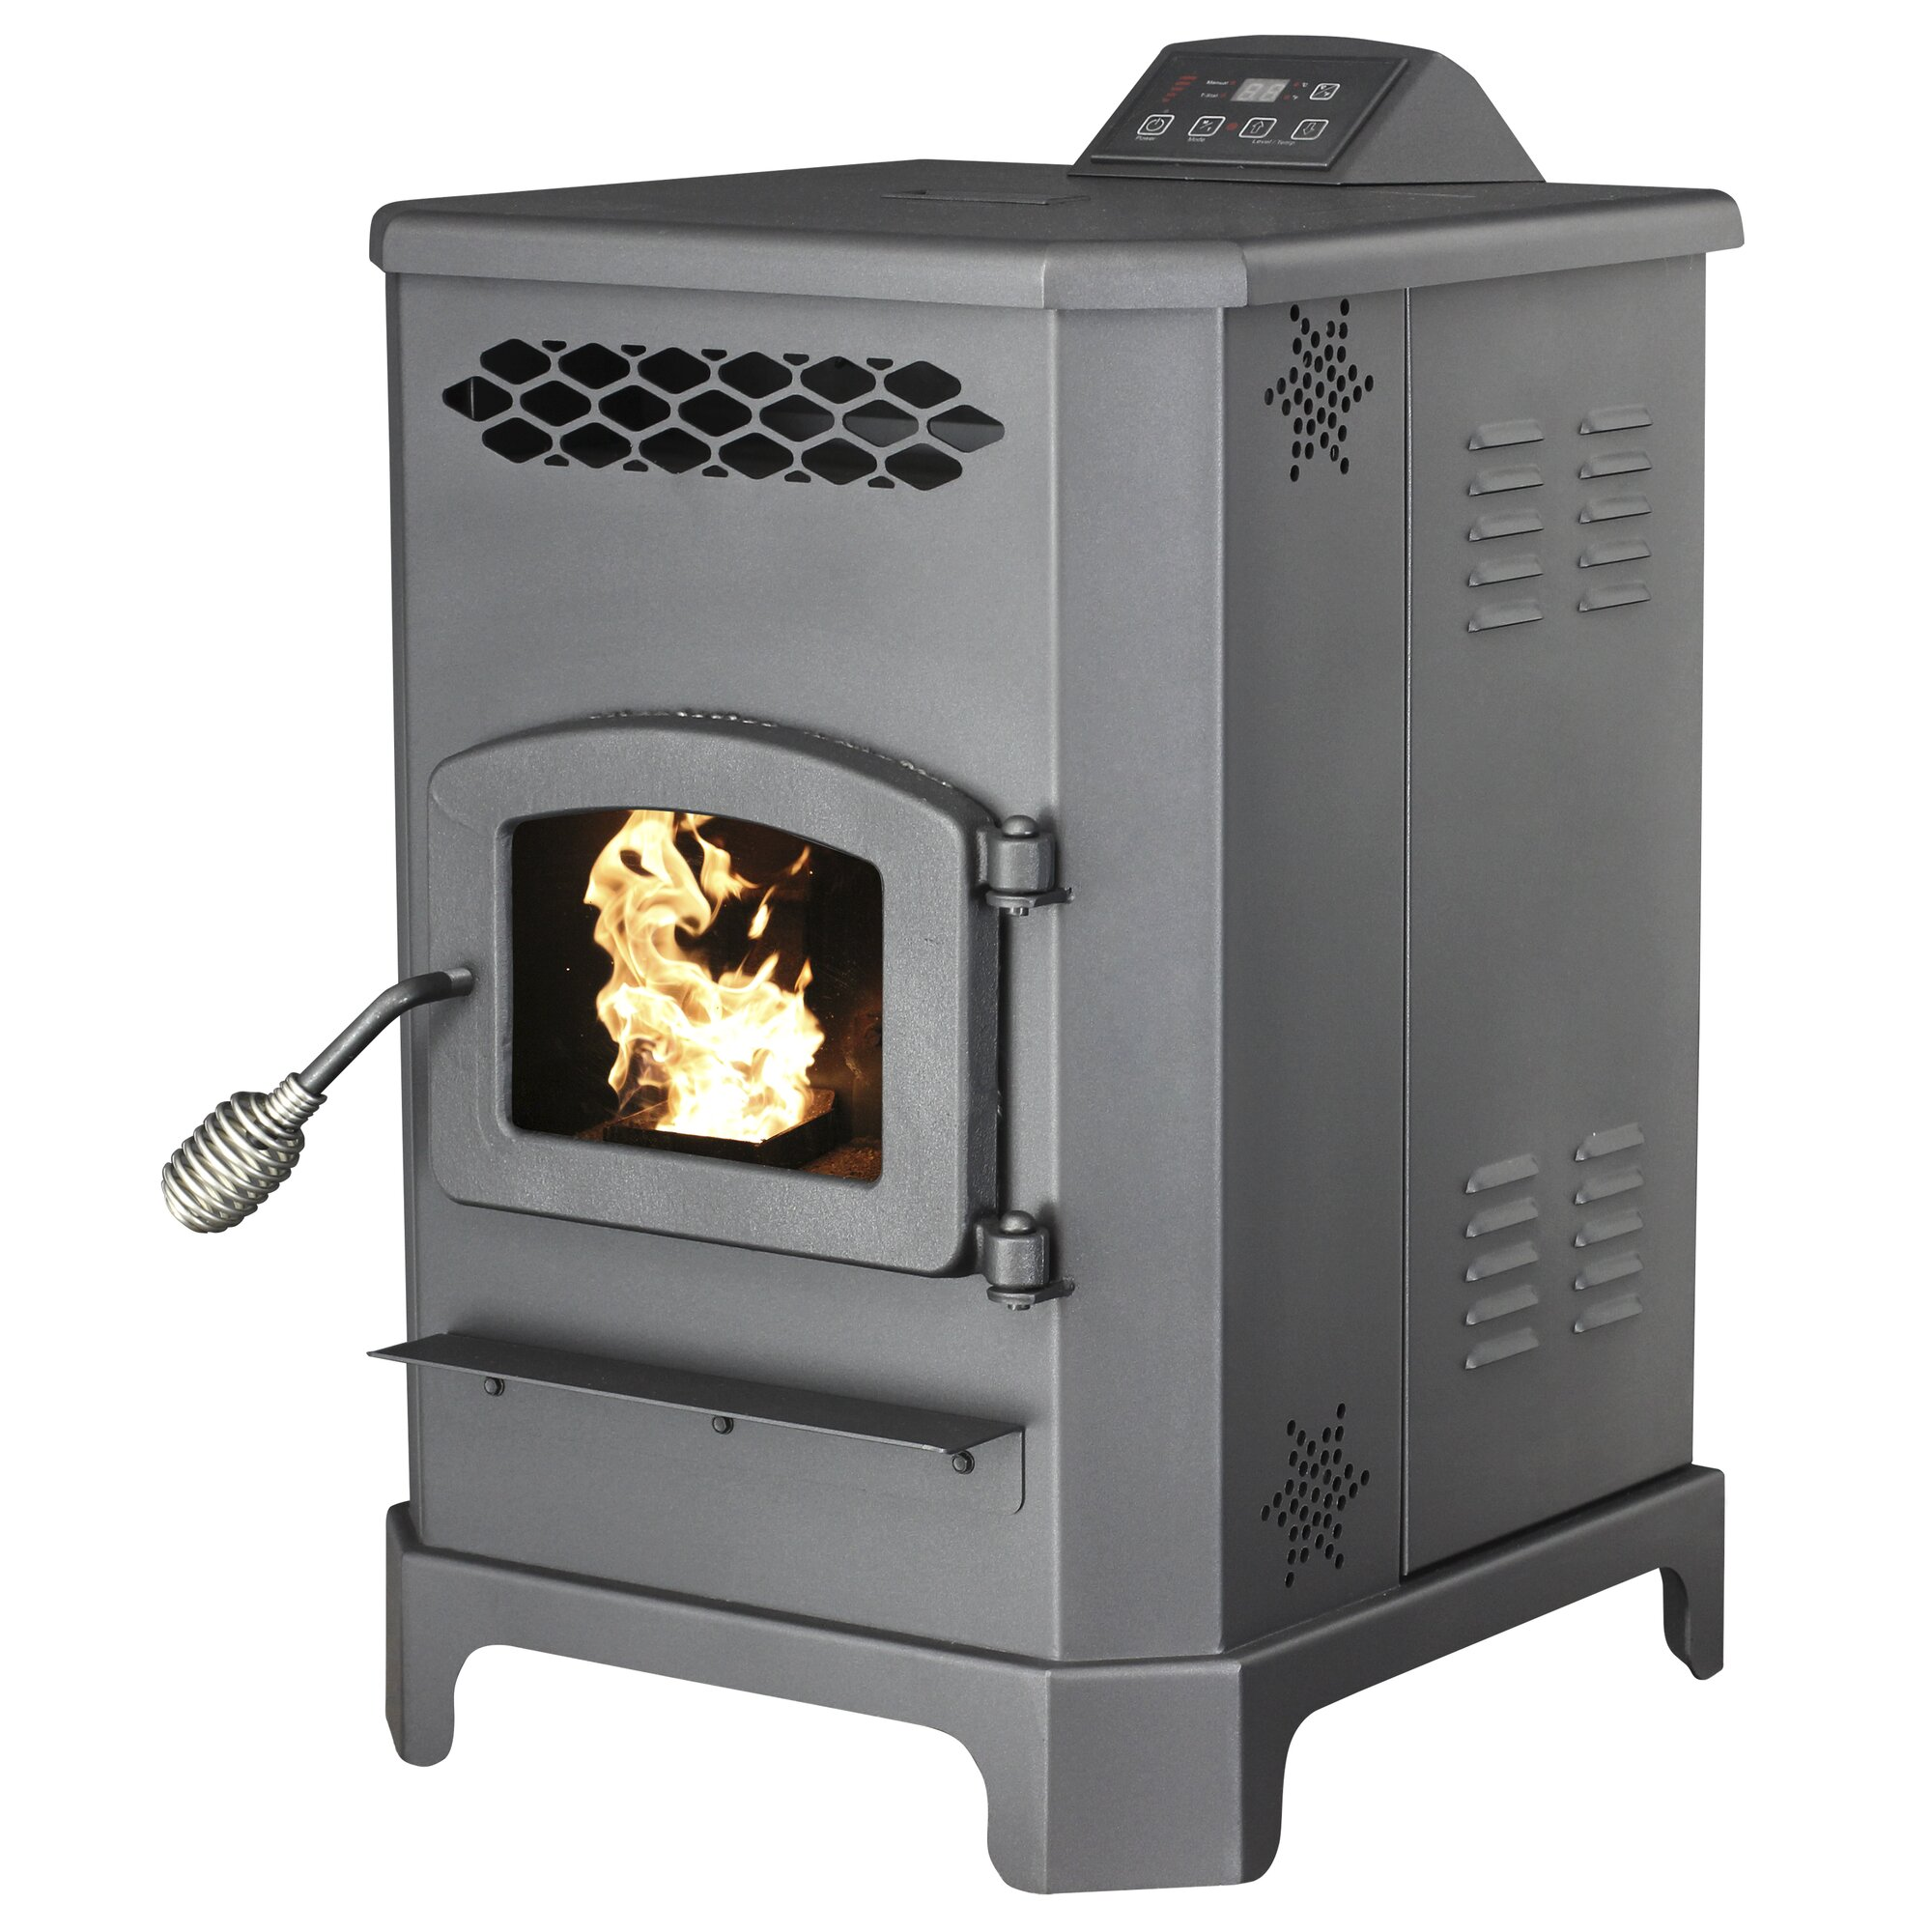 This Year's Direct Vent Wood Pellet Stoves, 19493172 Designs, 1541 ...